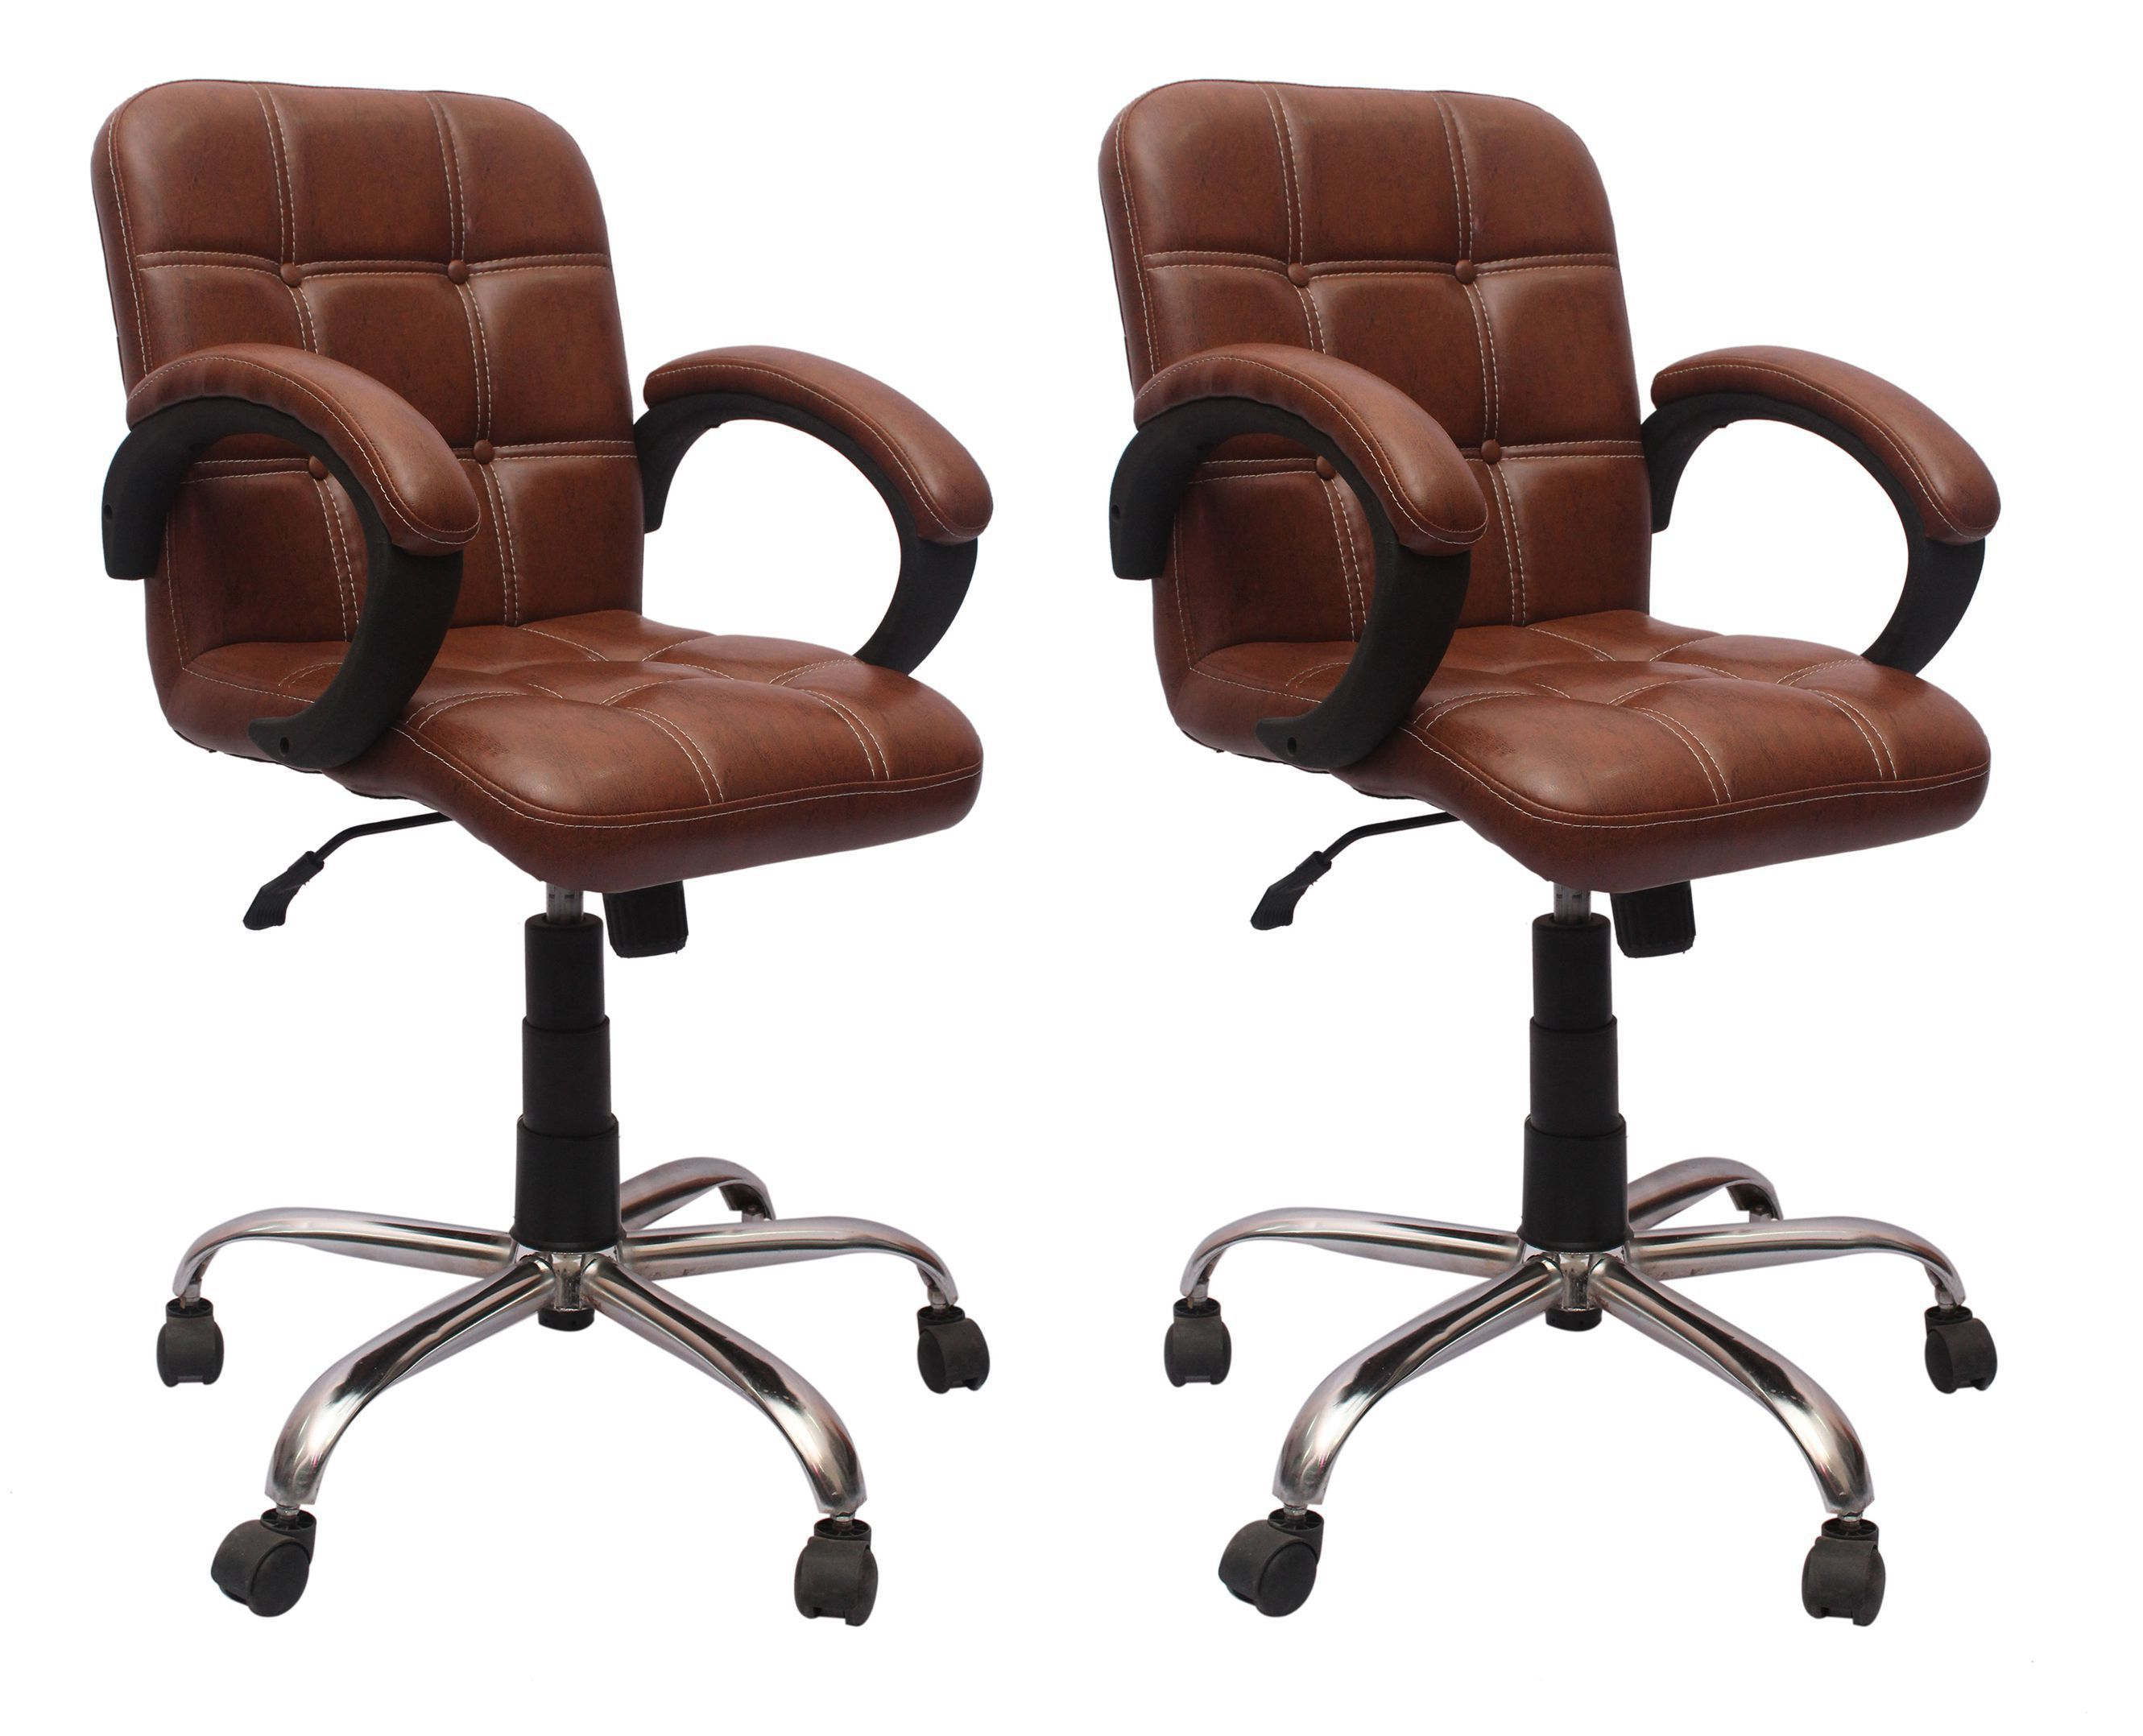 VJ Interior Leatherette fice Arm Chair BO Set Buy VJ Interior